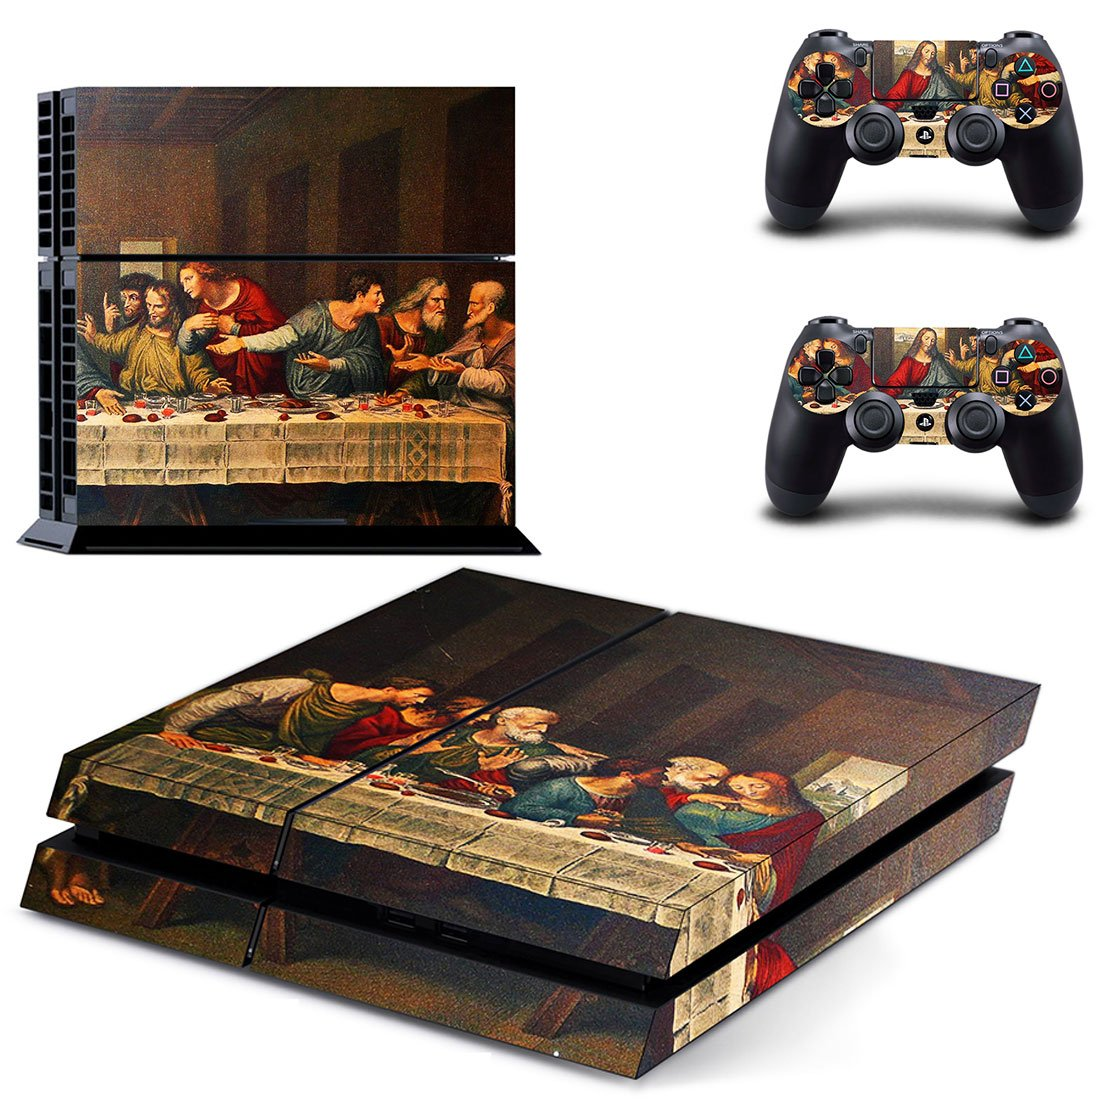 Jesus christ last supper ps4 skin decal for console and 2 controllers